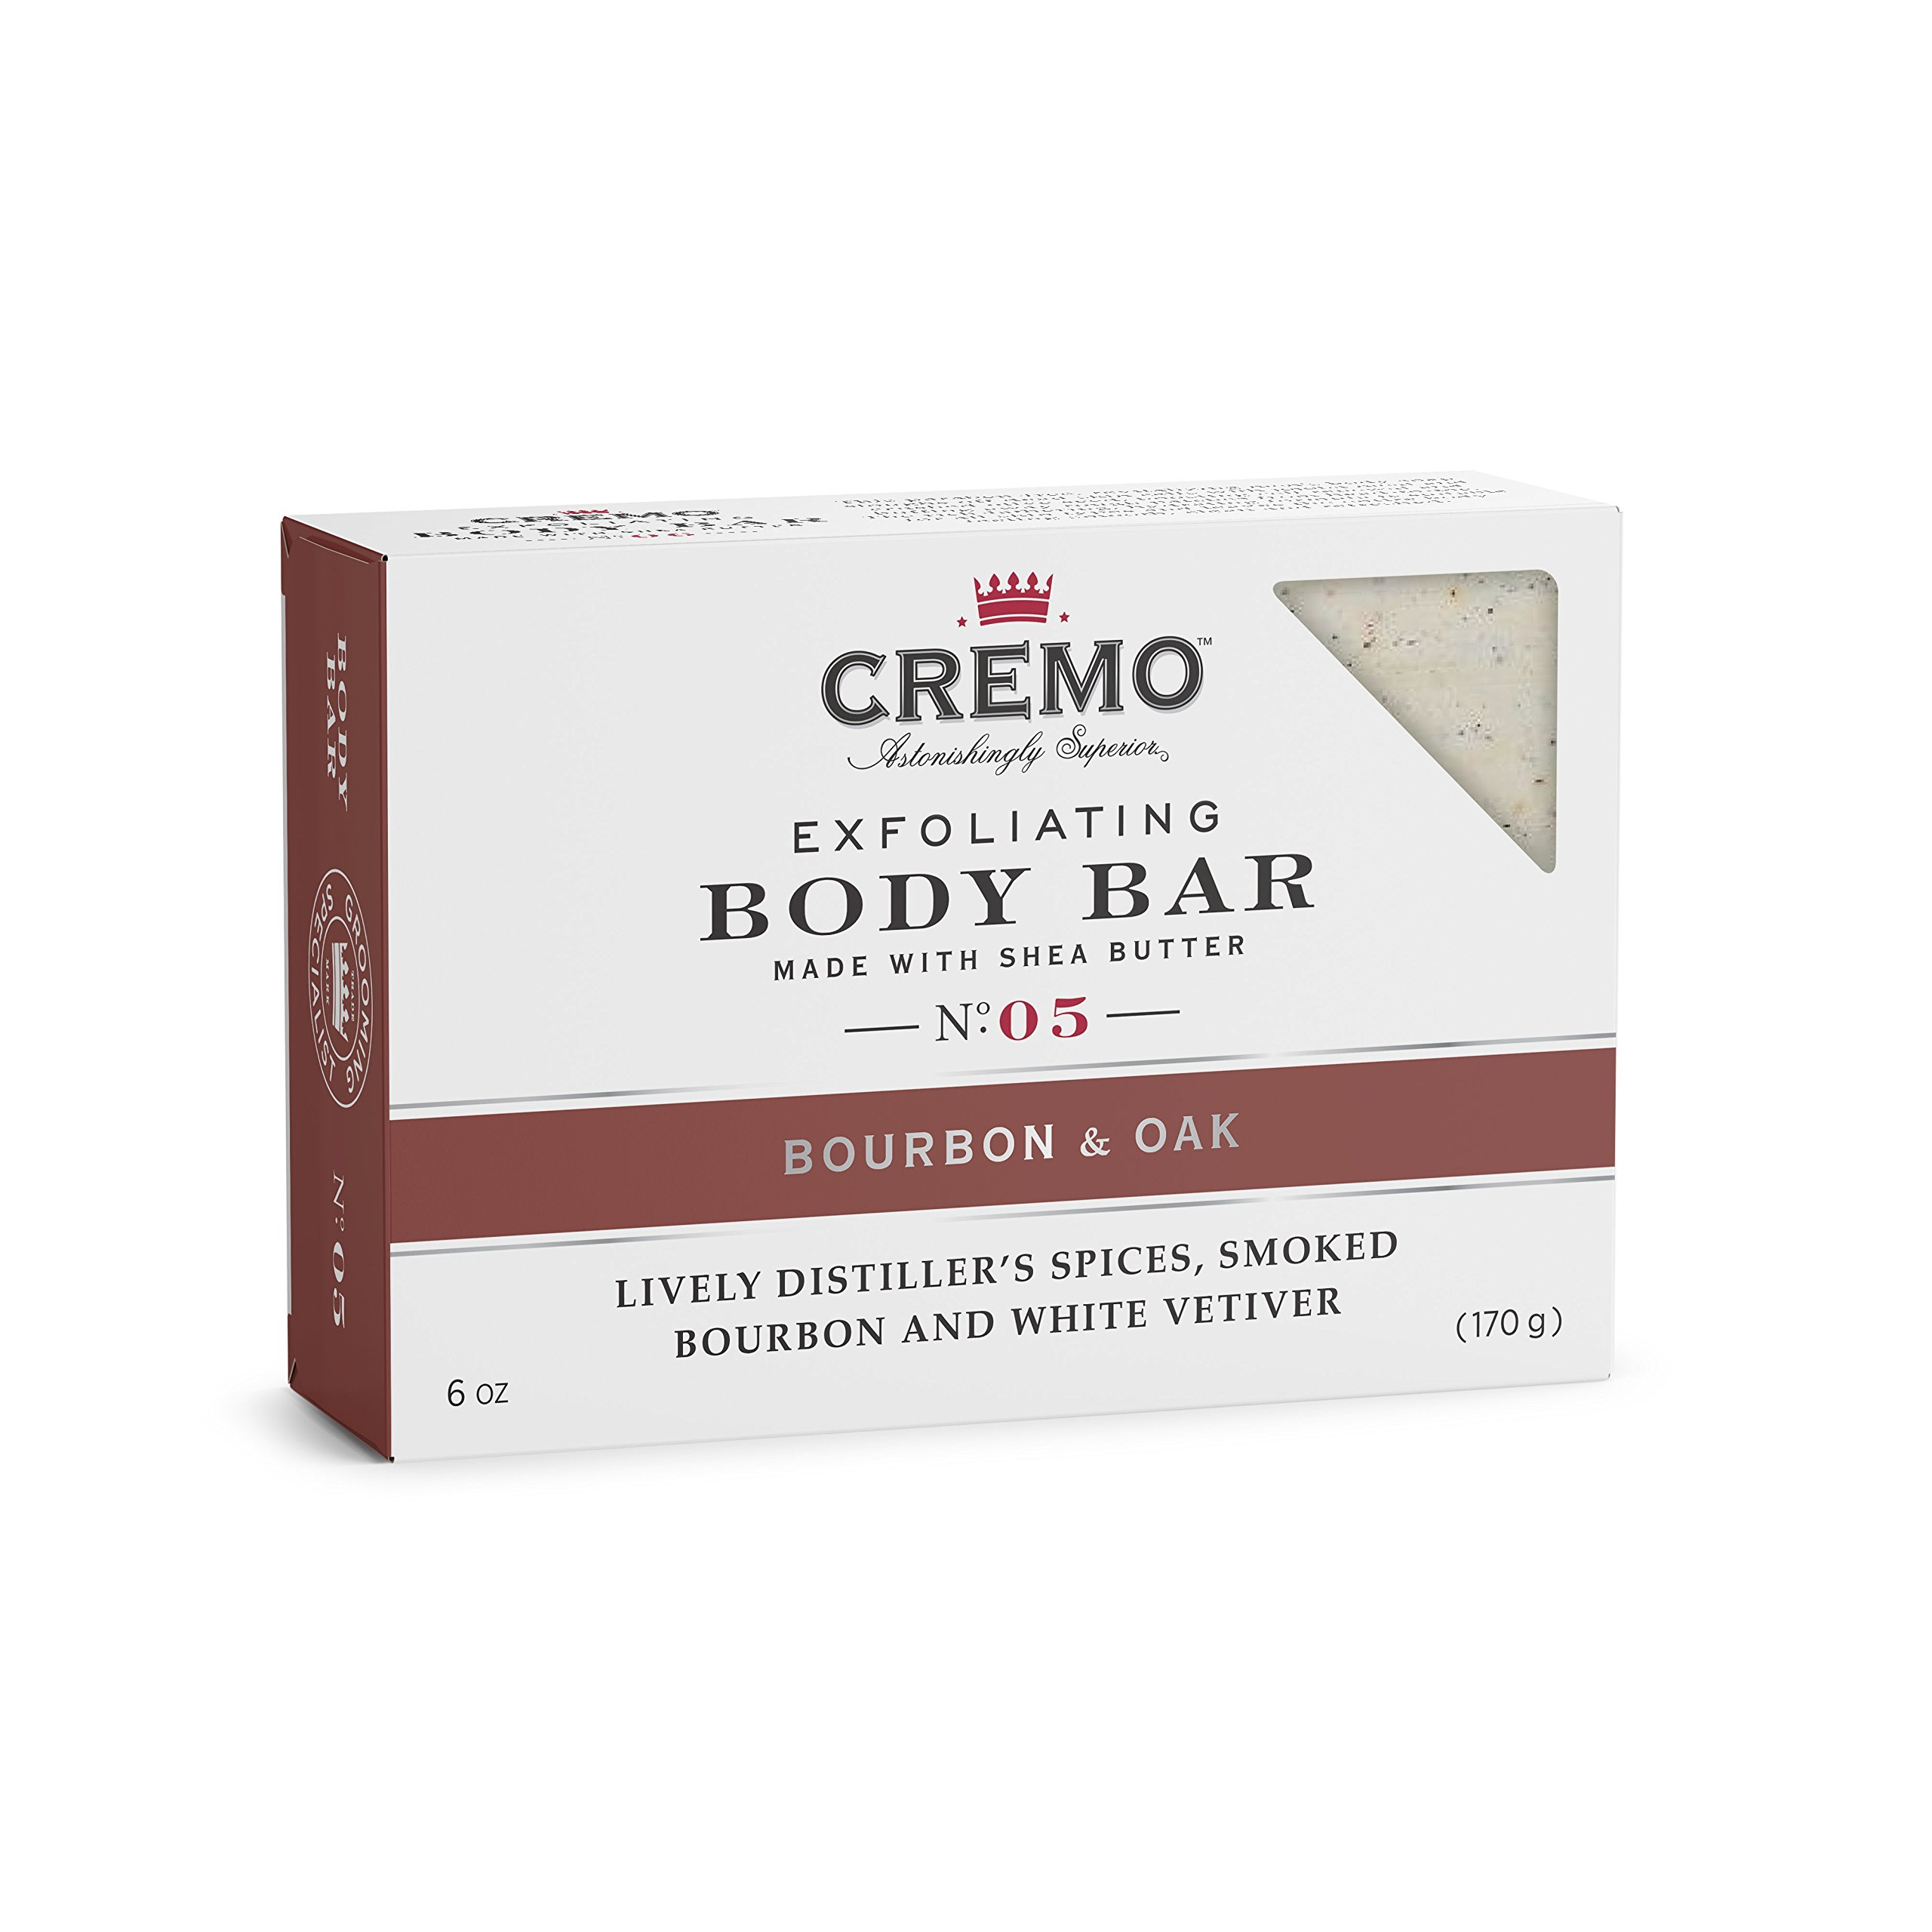 Cremo Exfoliating Body Bar With Shea Butter - Bourbon & Oak, 6 ounce